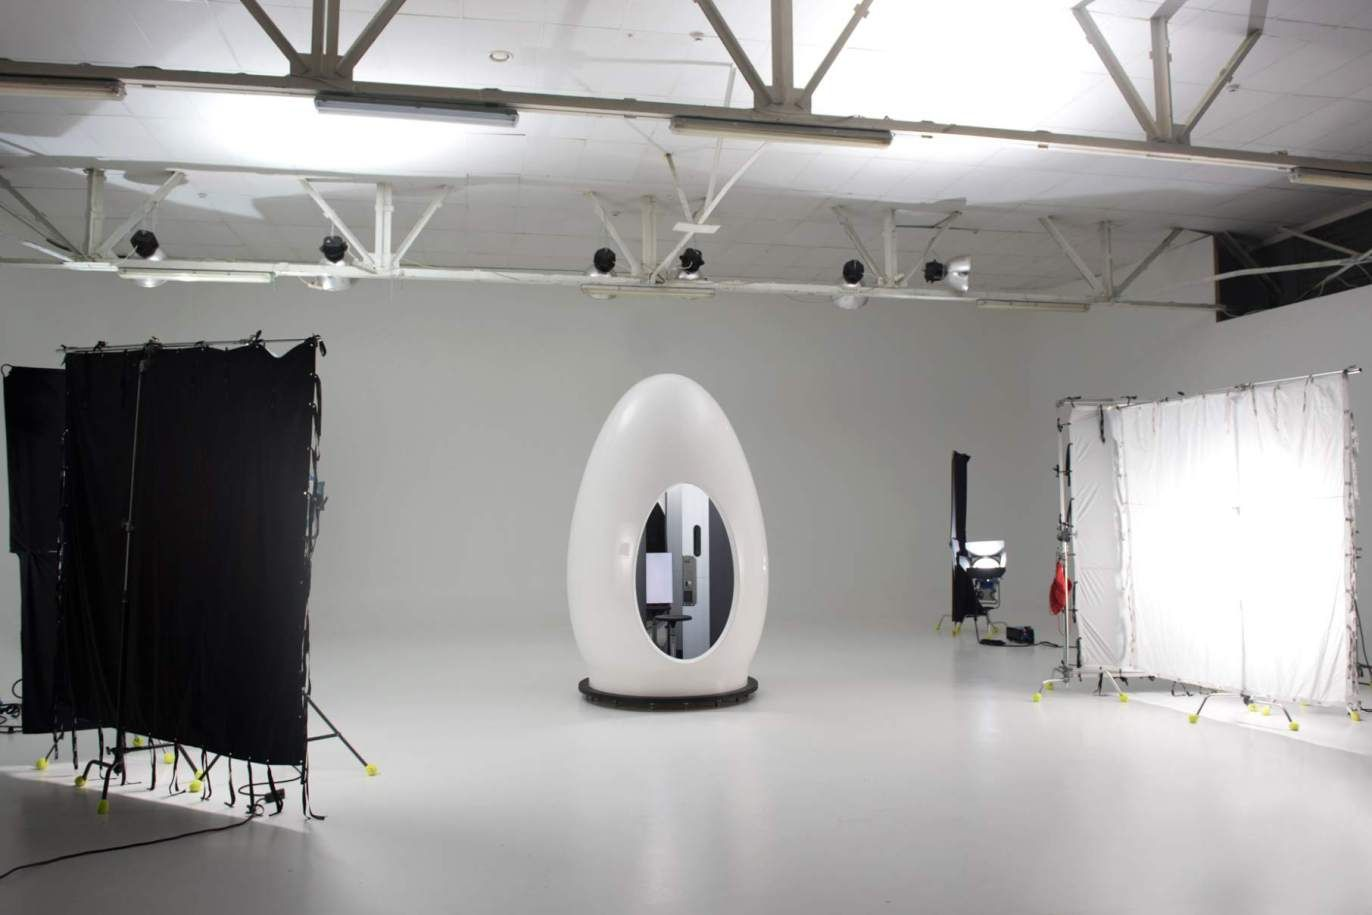 Wolfprint 3d Raises 500k To Bring Scanning Pods To An Airport